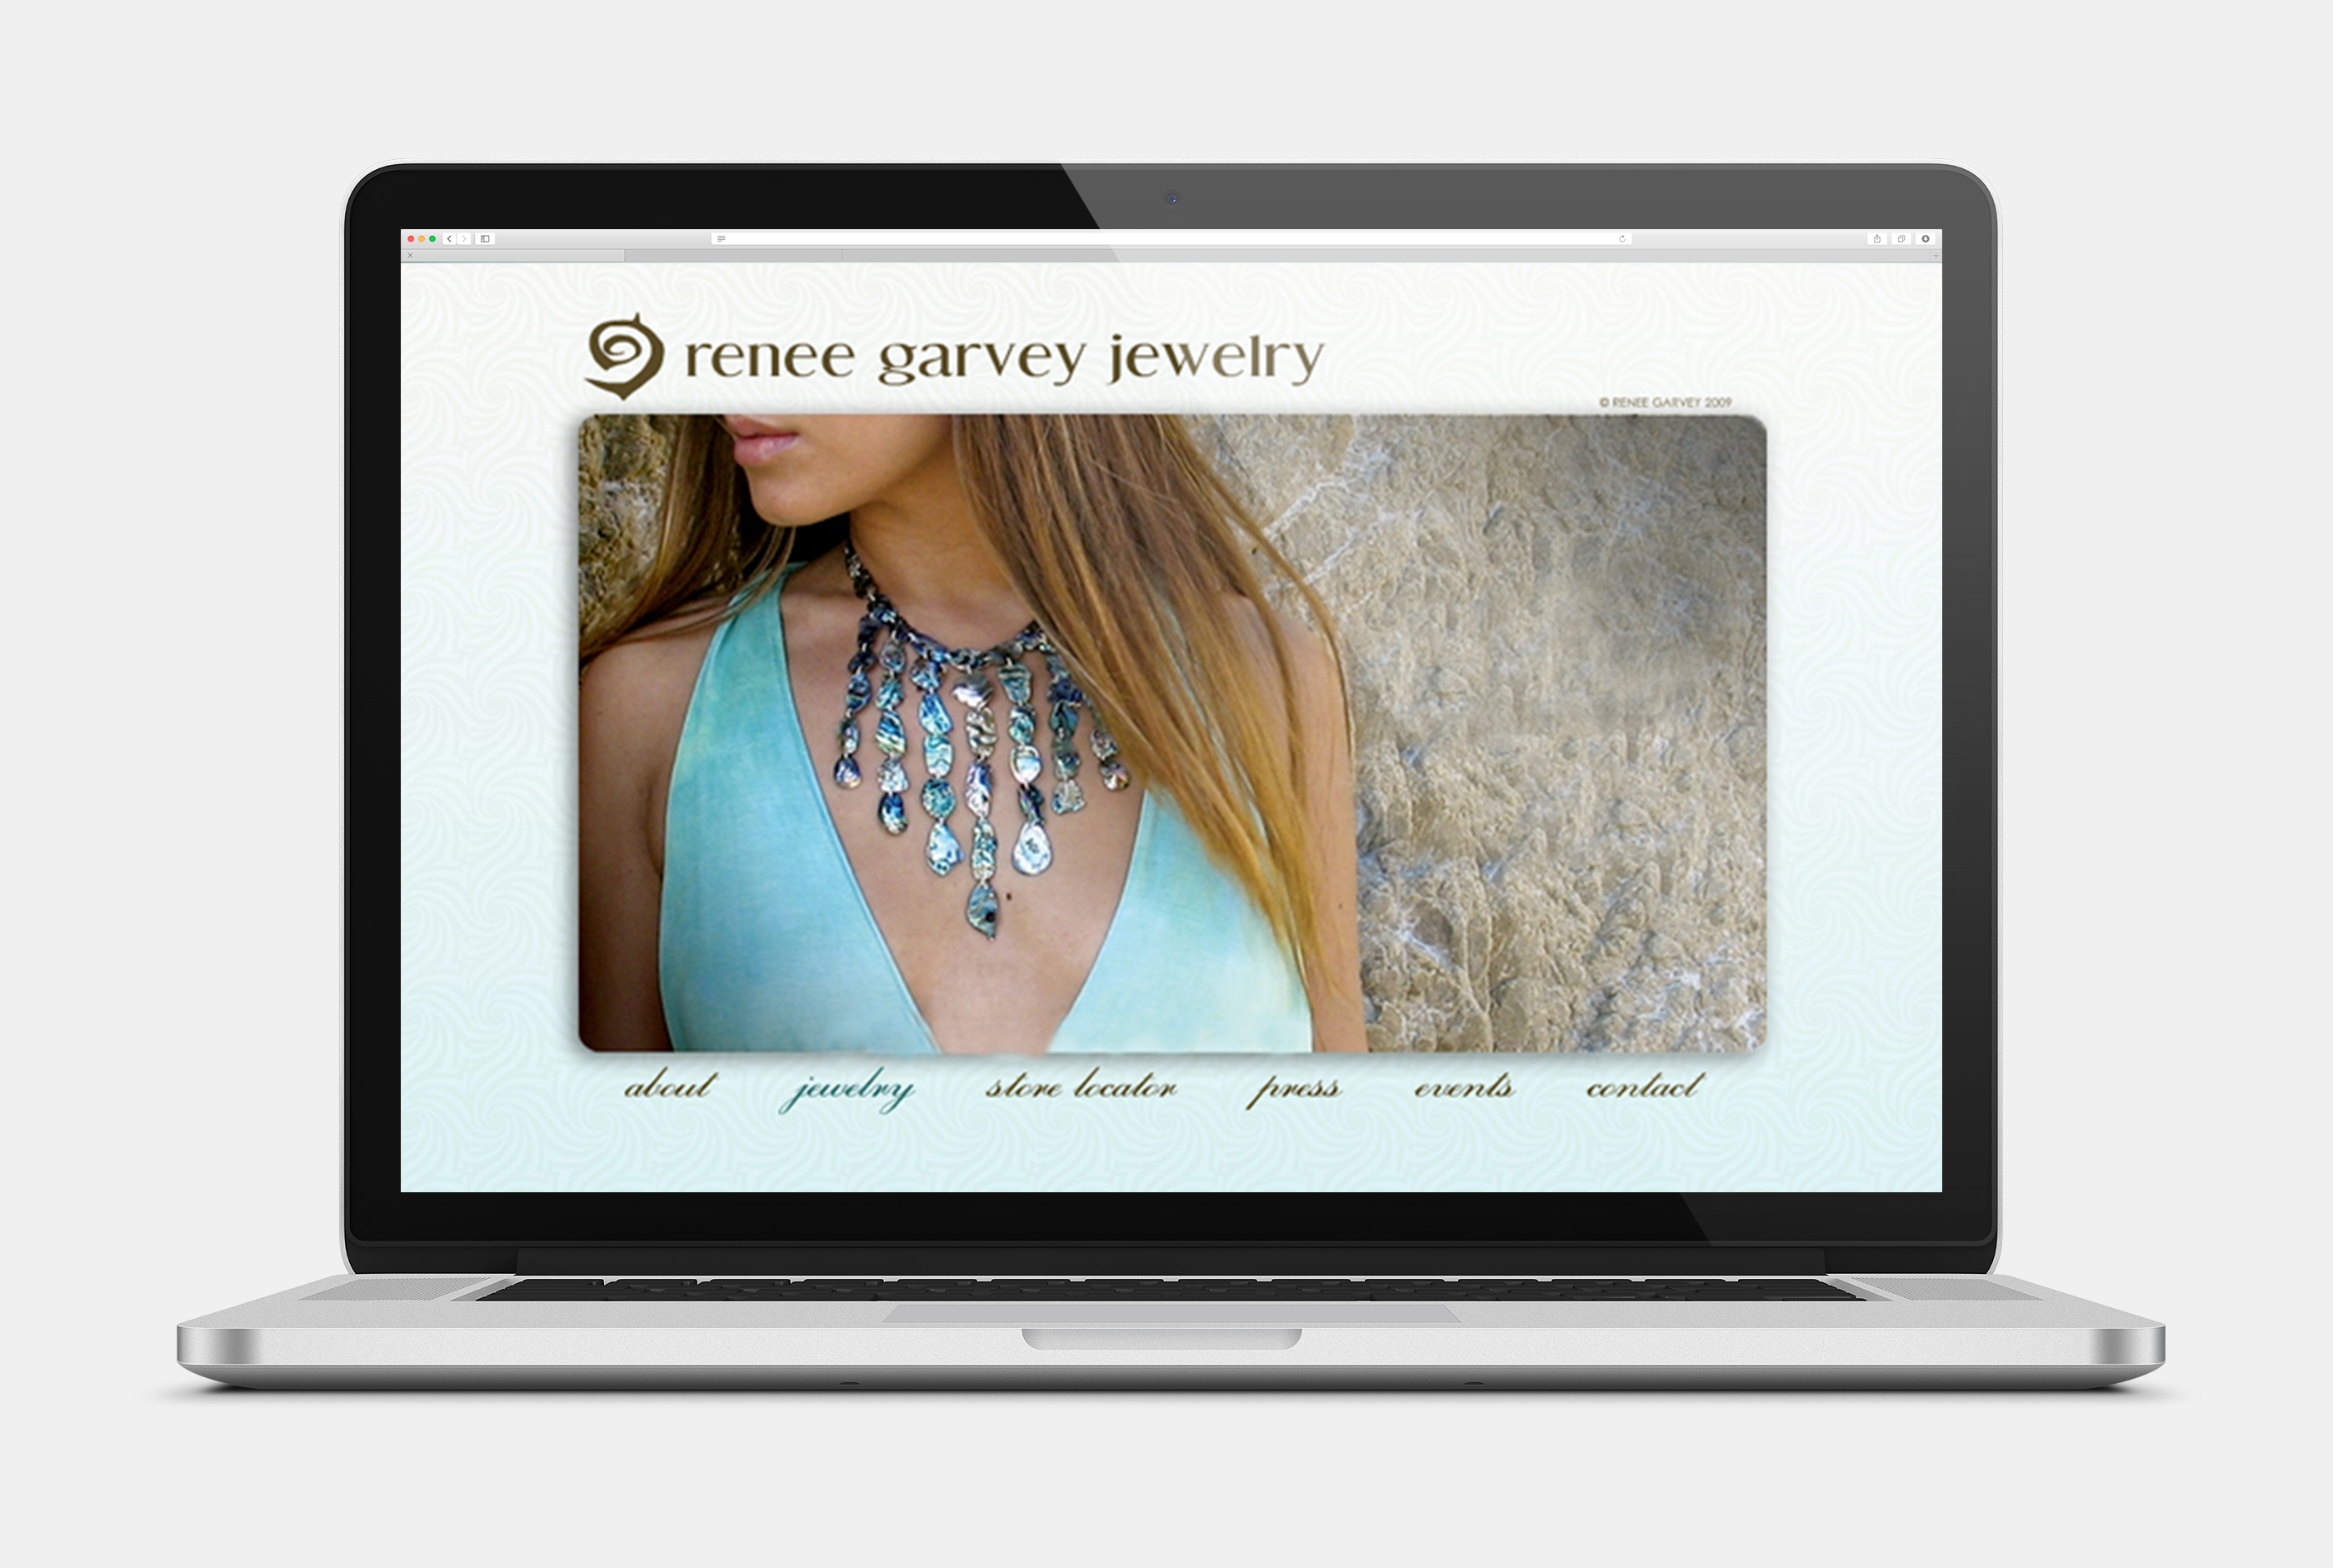 Renee Garvey Jewelry